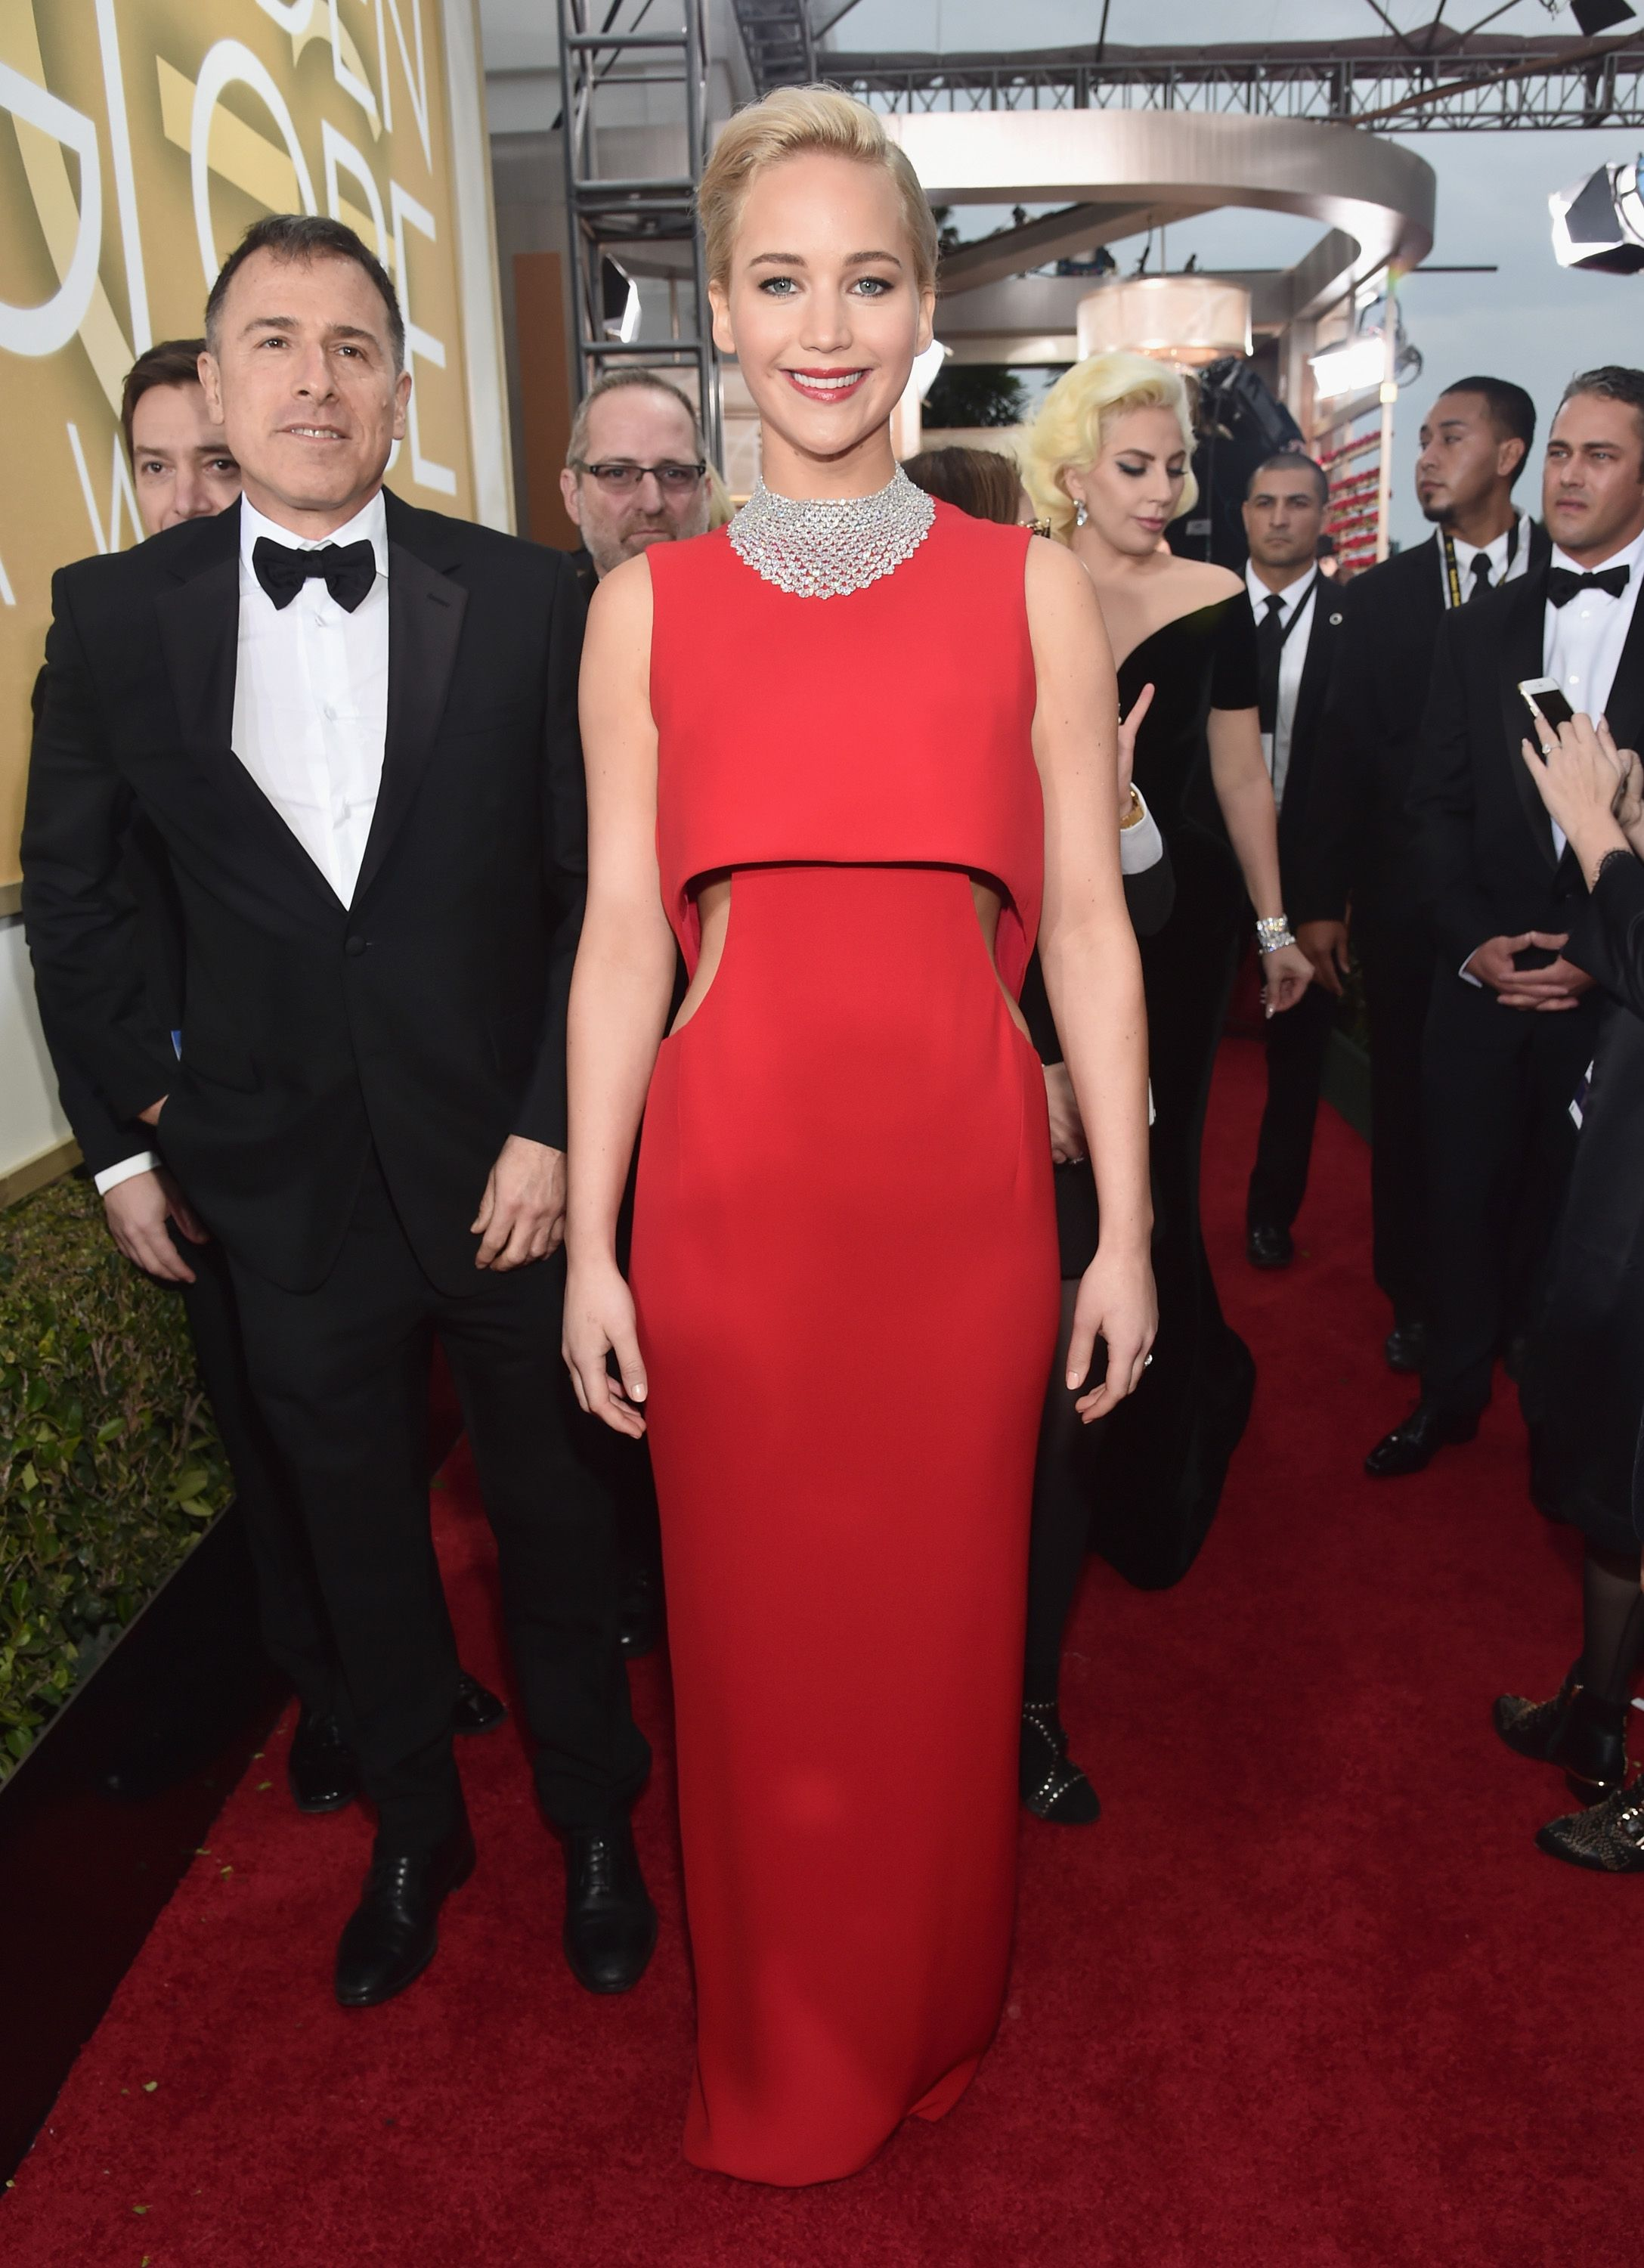 Golden globes the best dressed celebrities on the red carpet